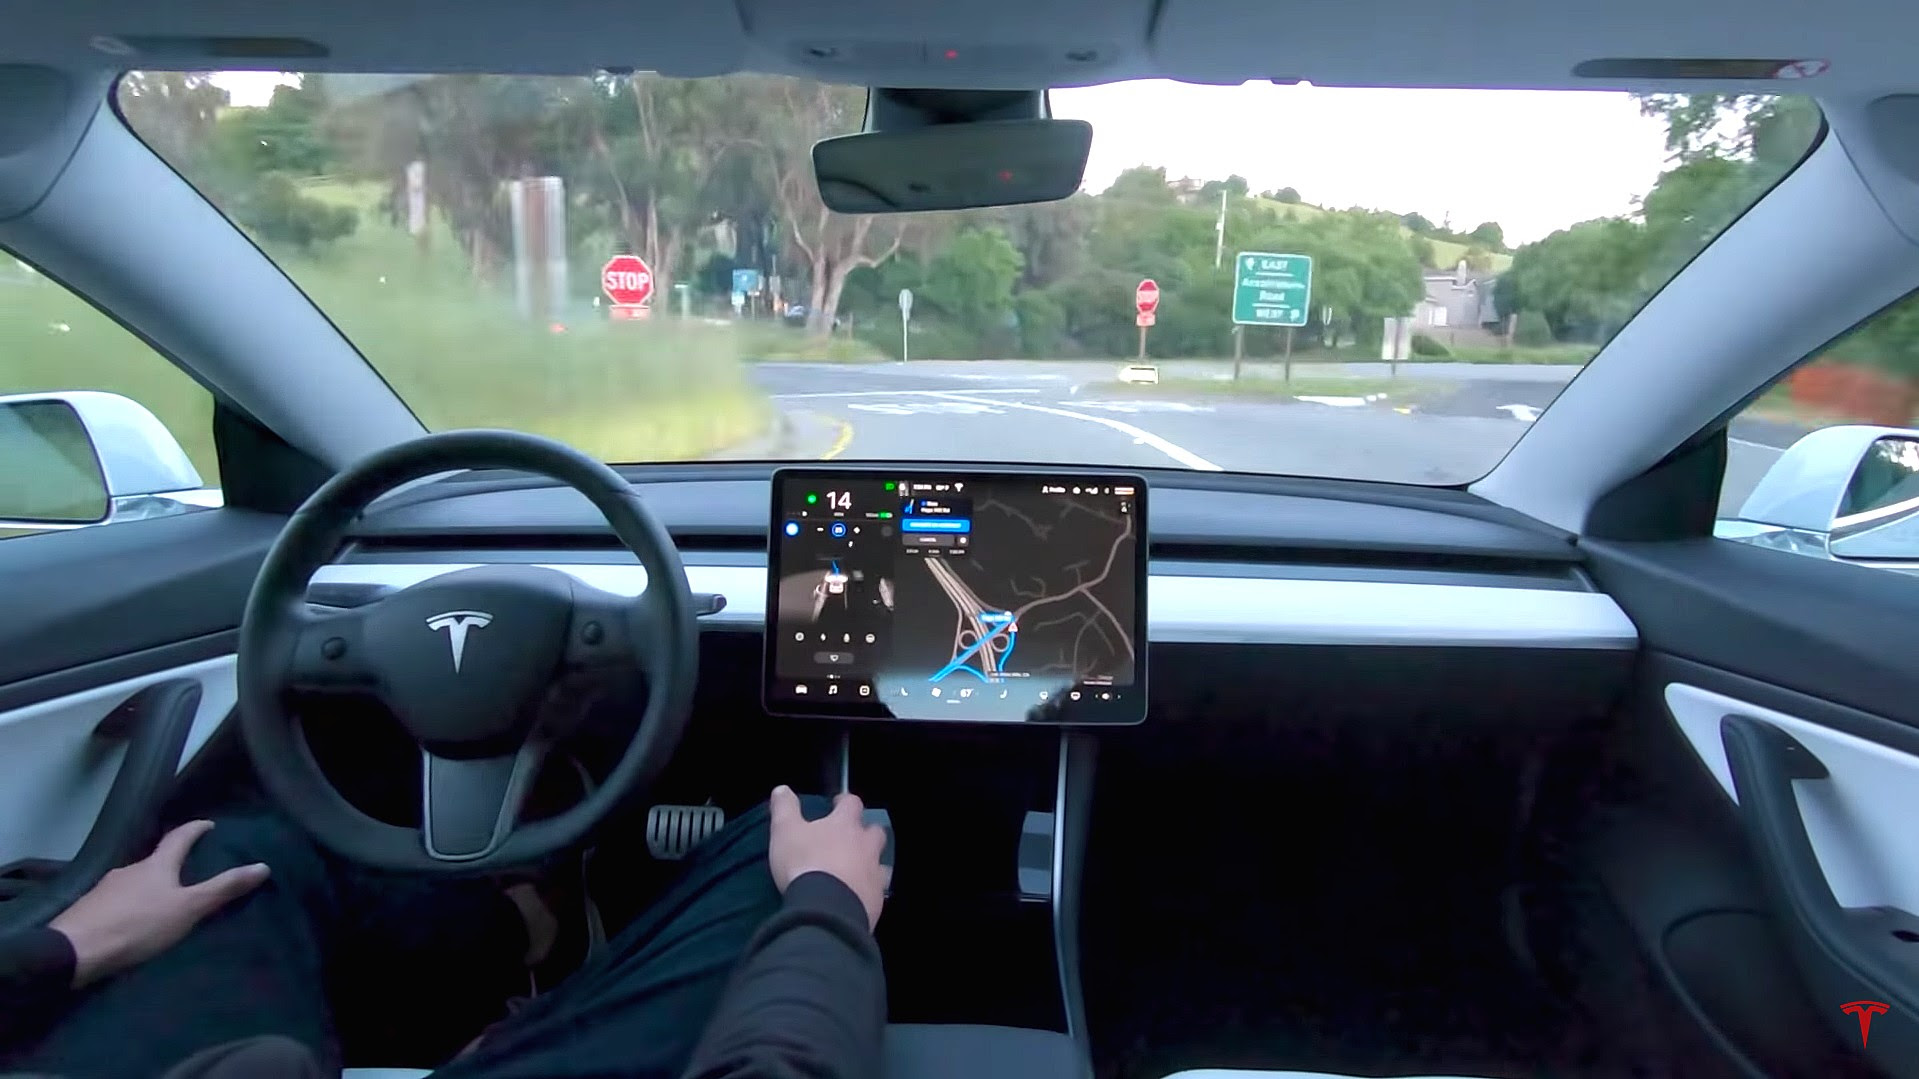 Tesla lawsuit claiming Autopilot is 'false advertising' allowed to proceed